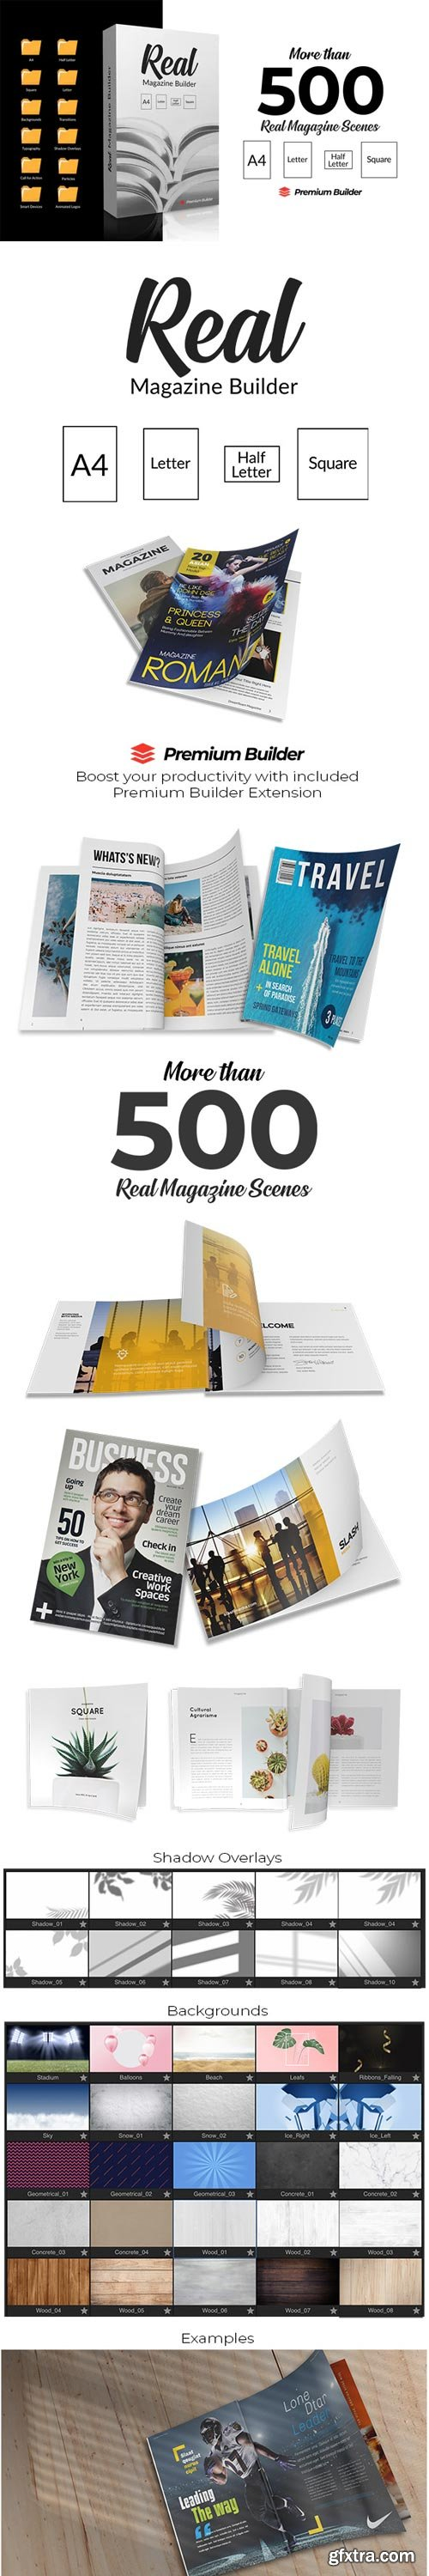 Videohive - Real Magazine Builder for Element 3D - 29703858